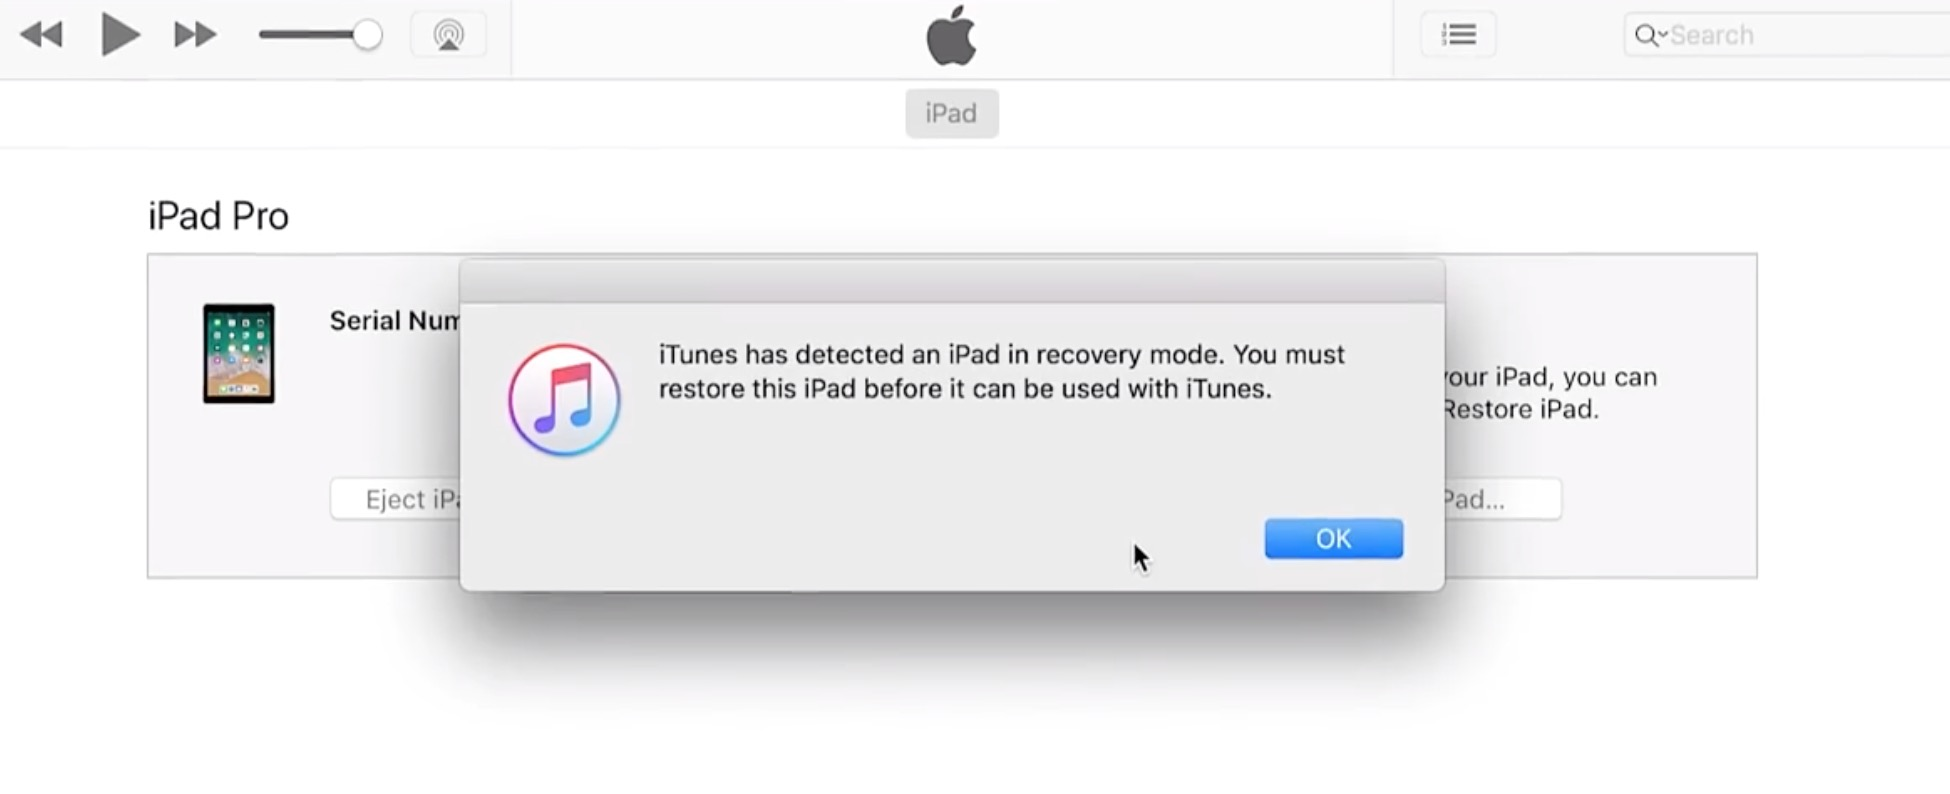 itunes has detected an ipad